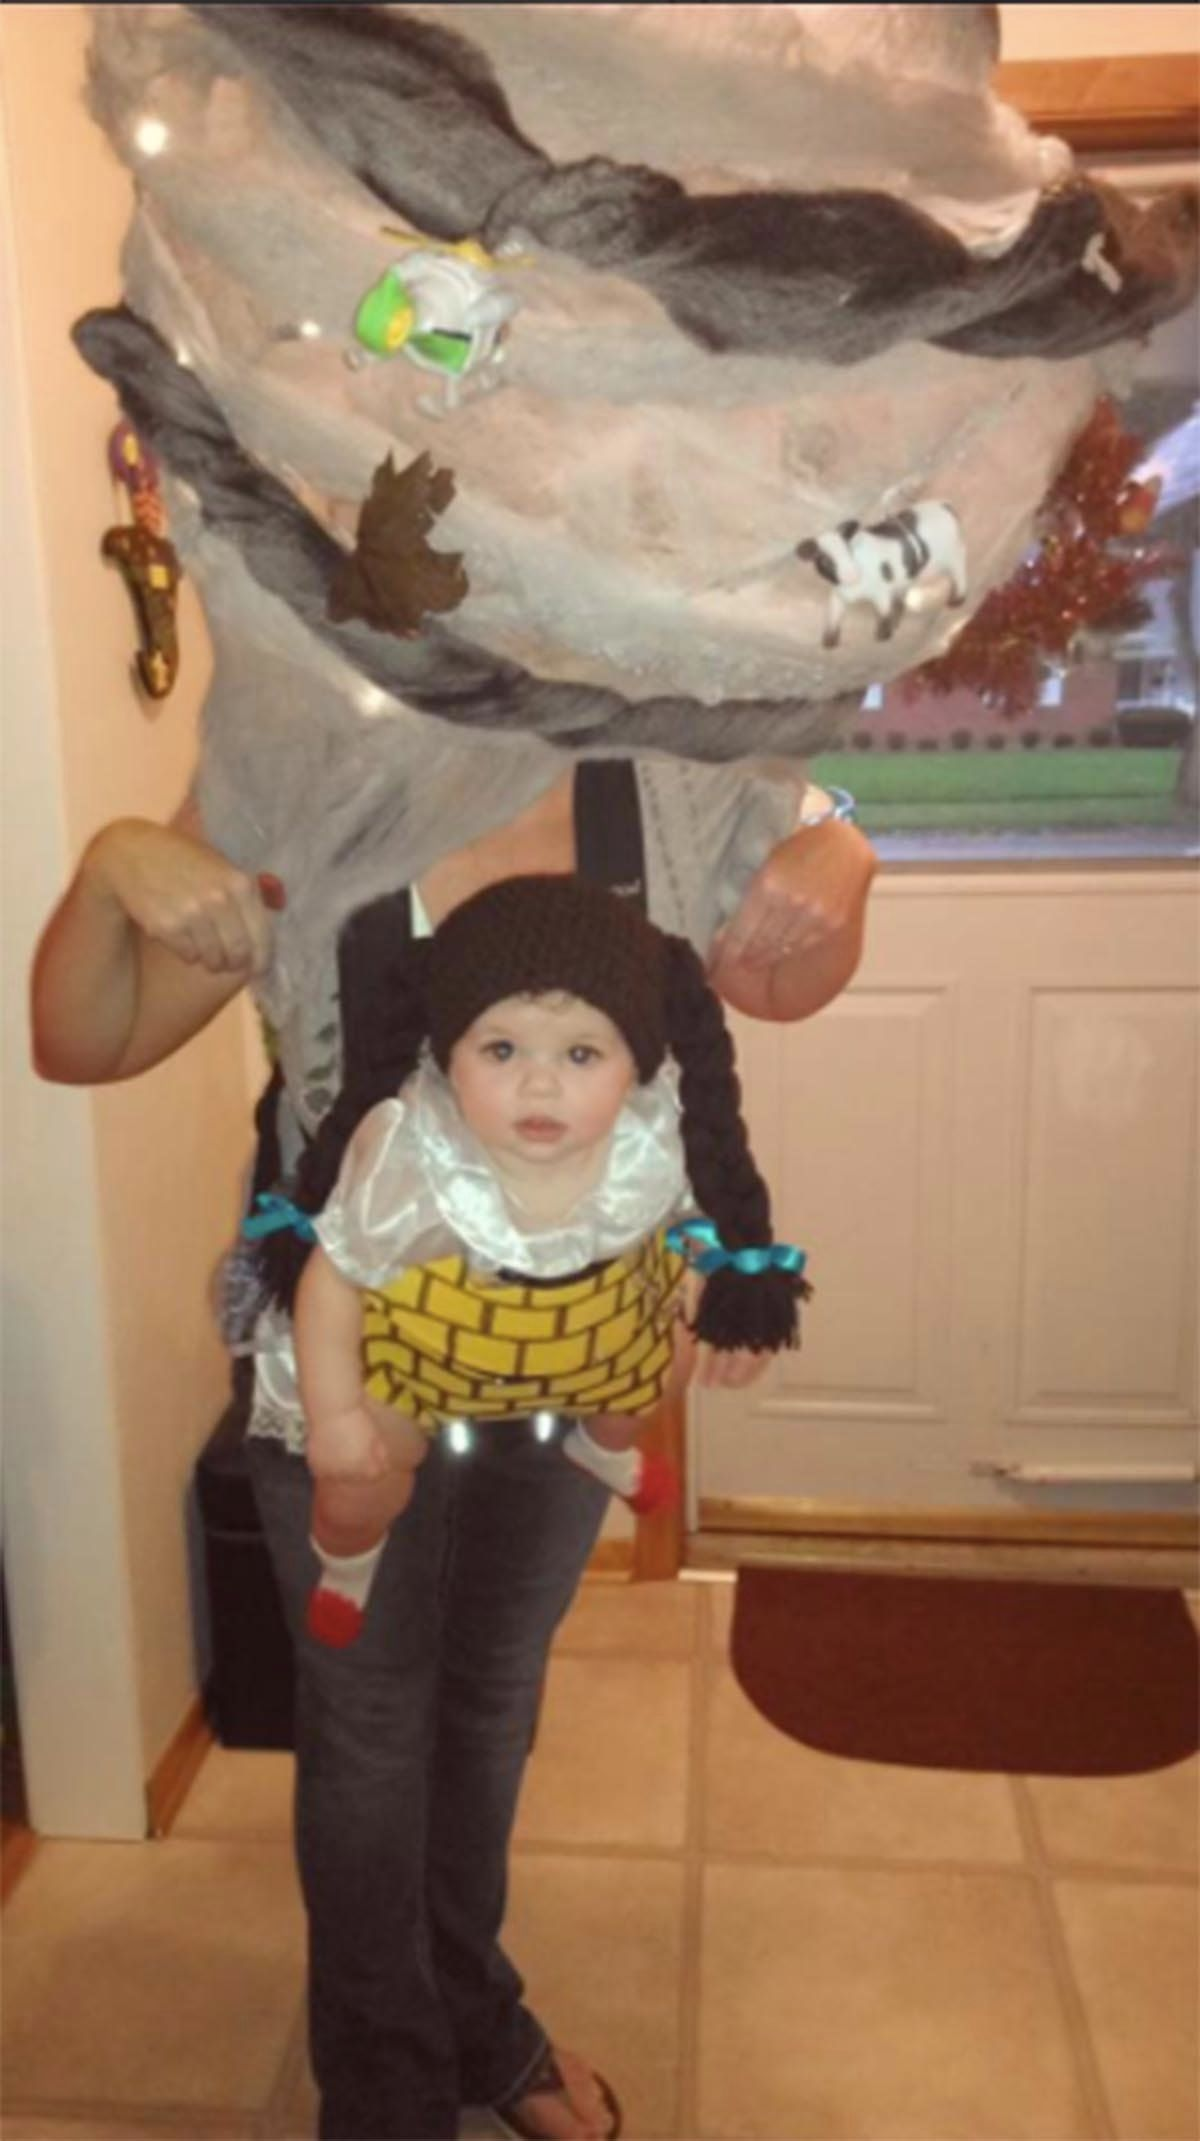 16 Brilliant Ways To Incorporate Your Baby Into Your Halloween Costume | HuffPost  sc 1 st  HuffPost & 16 Brilliant Ways To Incorporate Your Baby Into Your Halloween ...